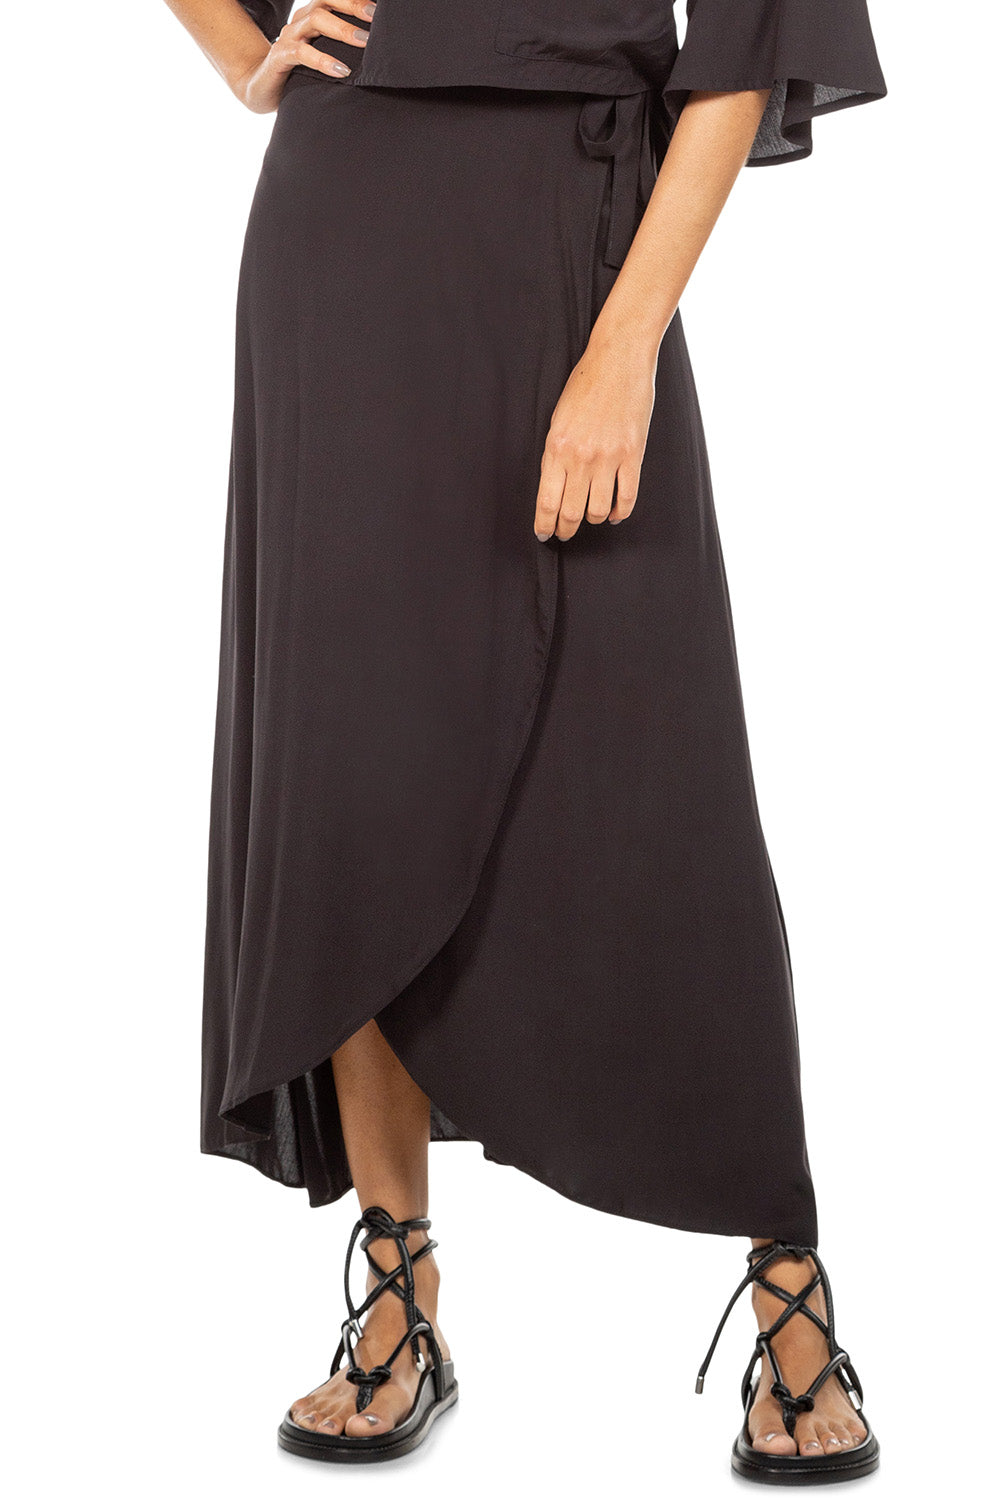 Sunset Midi Wrap Skirt